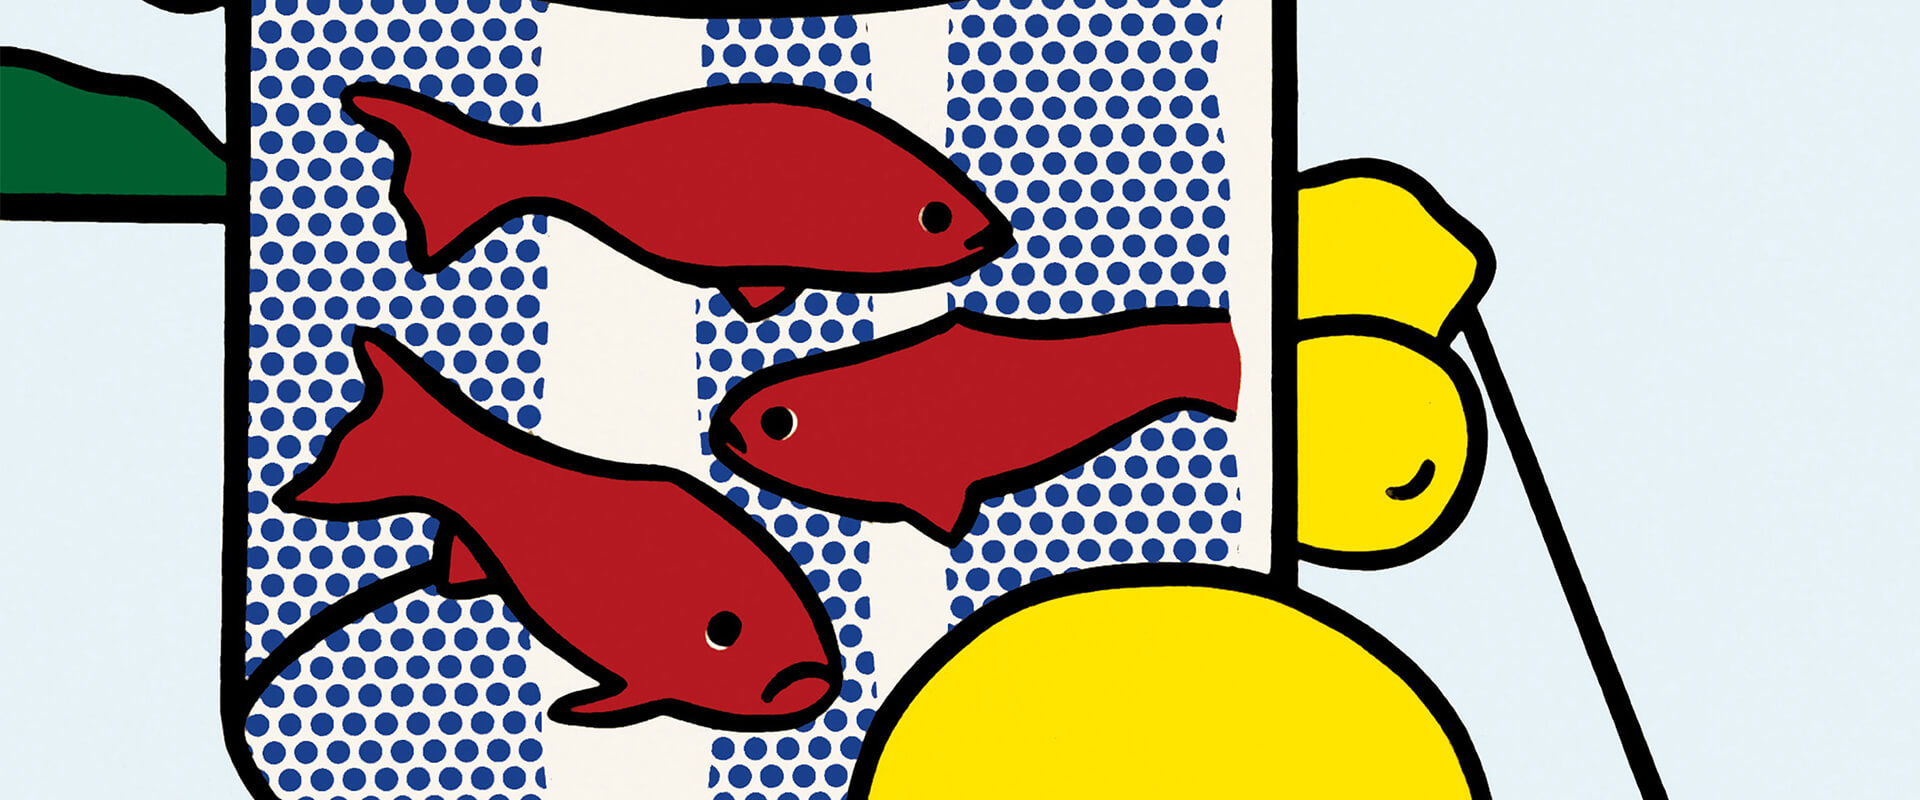 Roy Lichtenstein Artworks Collection | Buy Posters, Frames, Canvas, Digital Art & Large Size Prints Of The Famous Modern Master's Artworks